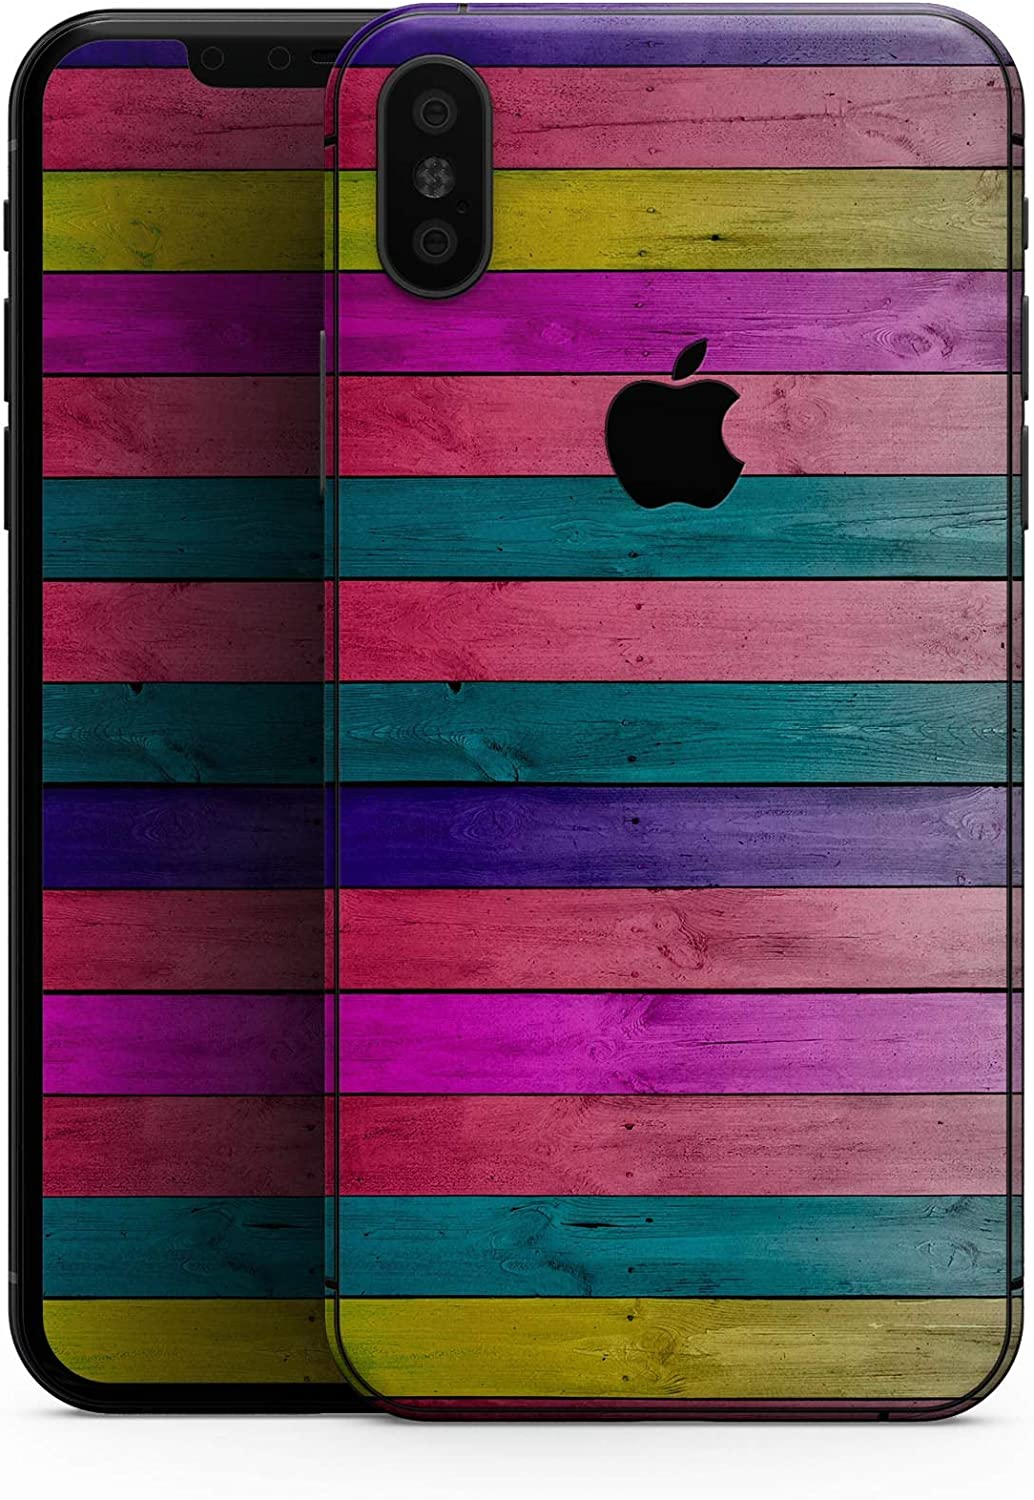 Vibrant Neon Colored Wood Strips - Design Skinz Premium Skin Decal Wrap for The iPhone 5s or SE